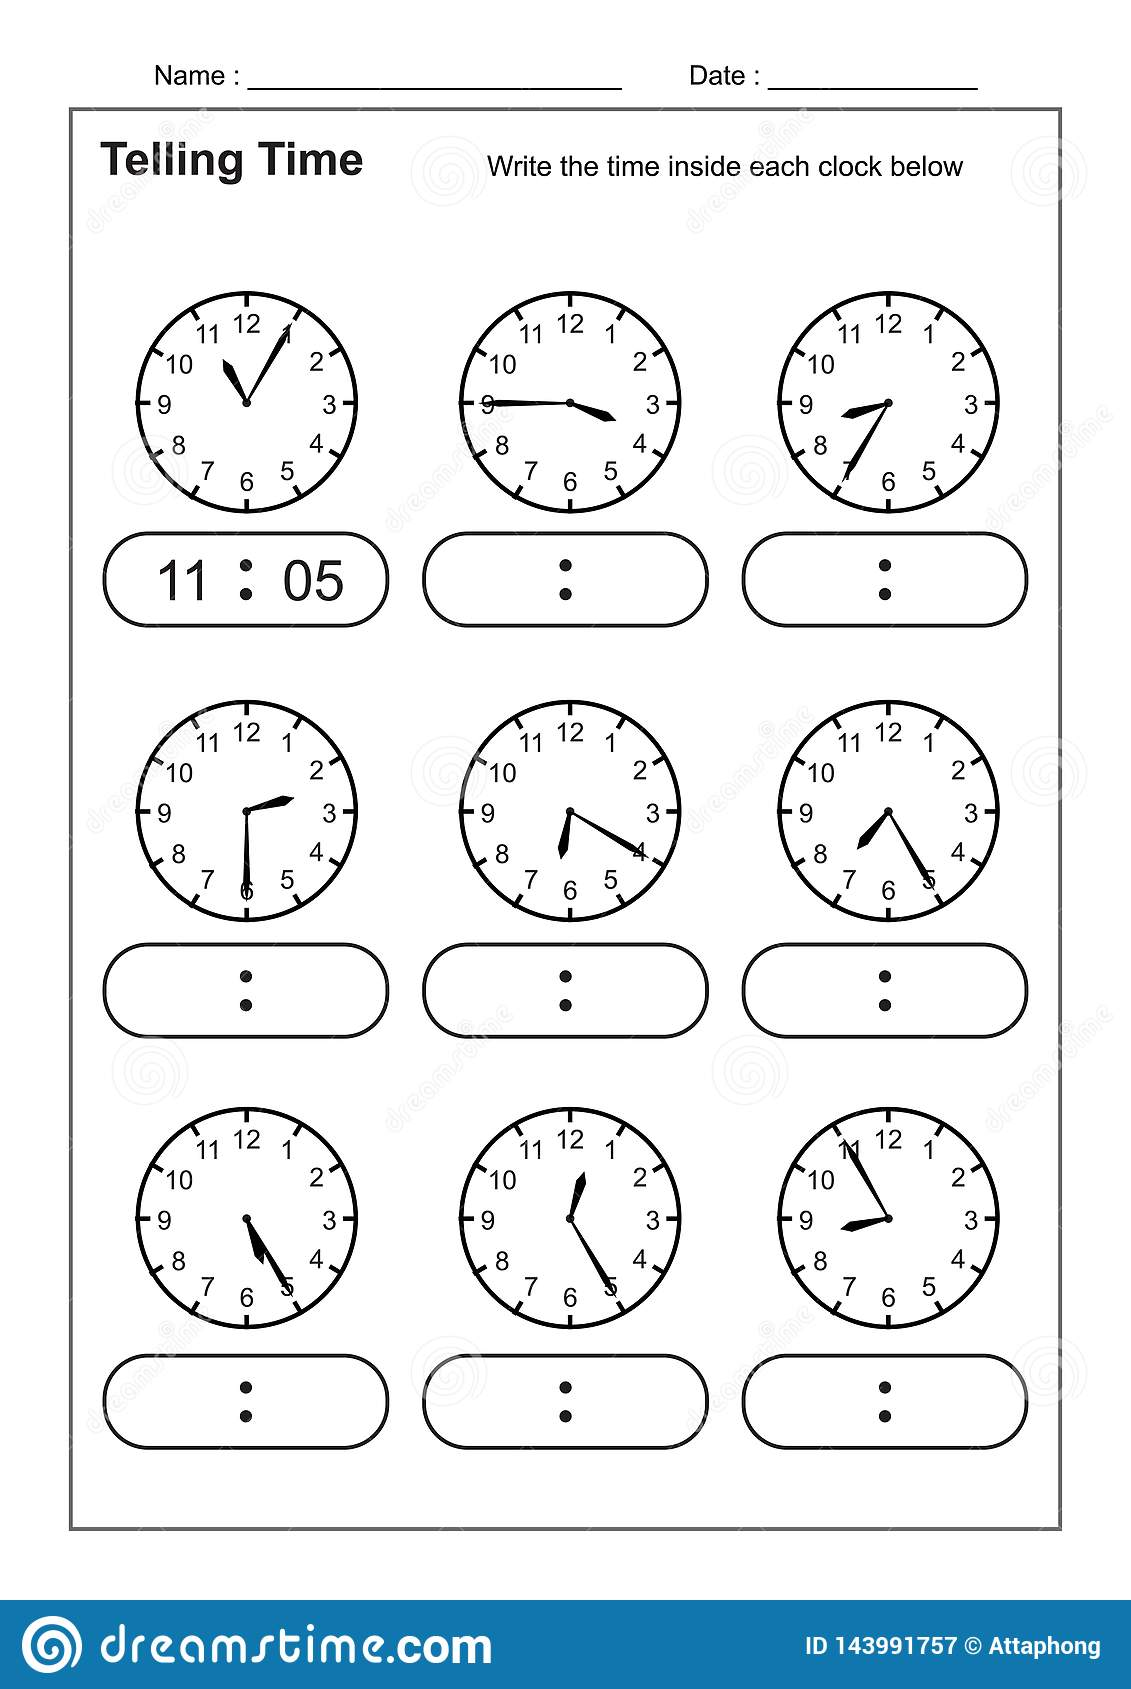 hight resolution of Telling Time Telling The Time Practice For Children Time Worksheets For  Learning To Tell Time Game Time Worksheets Stock Vector - Illustration of  kindergarten